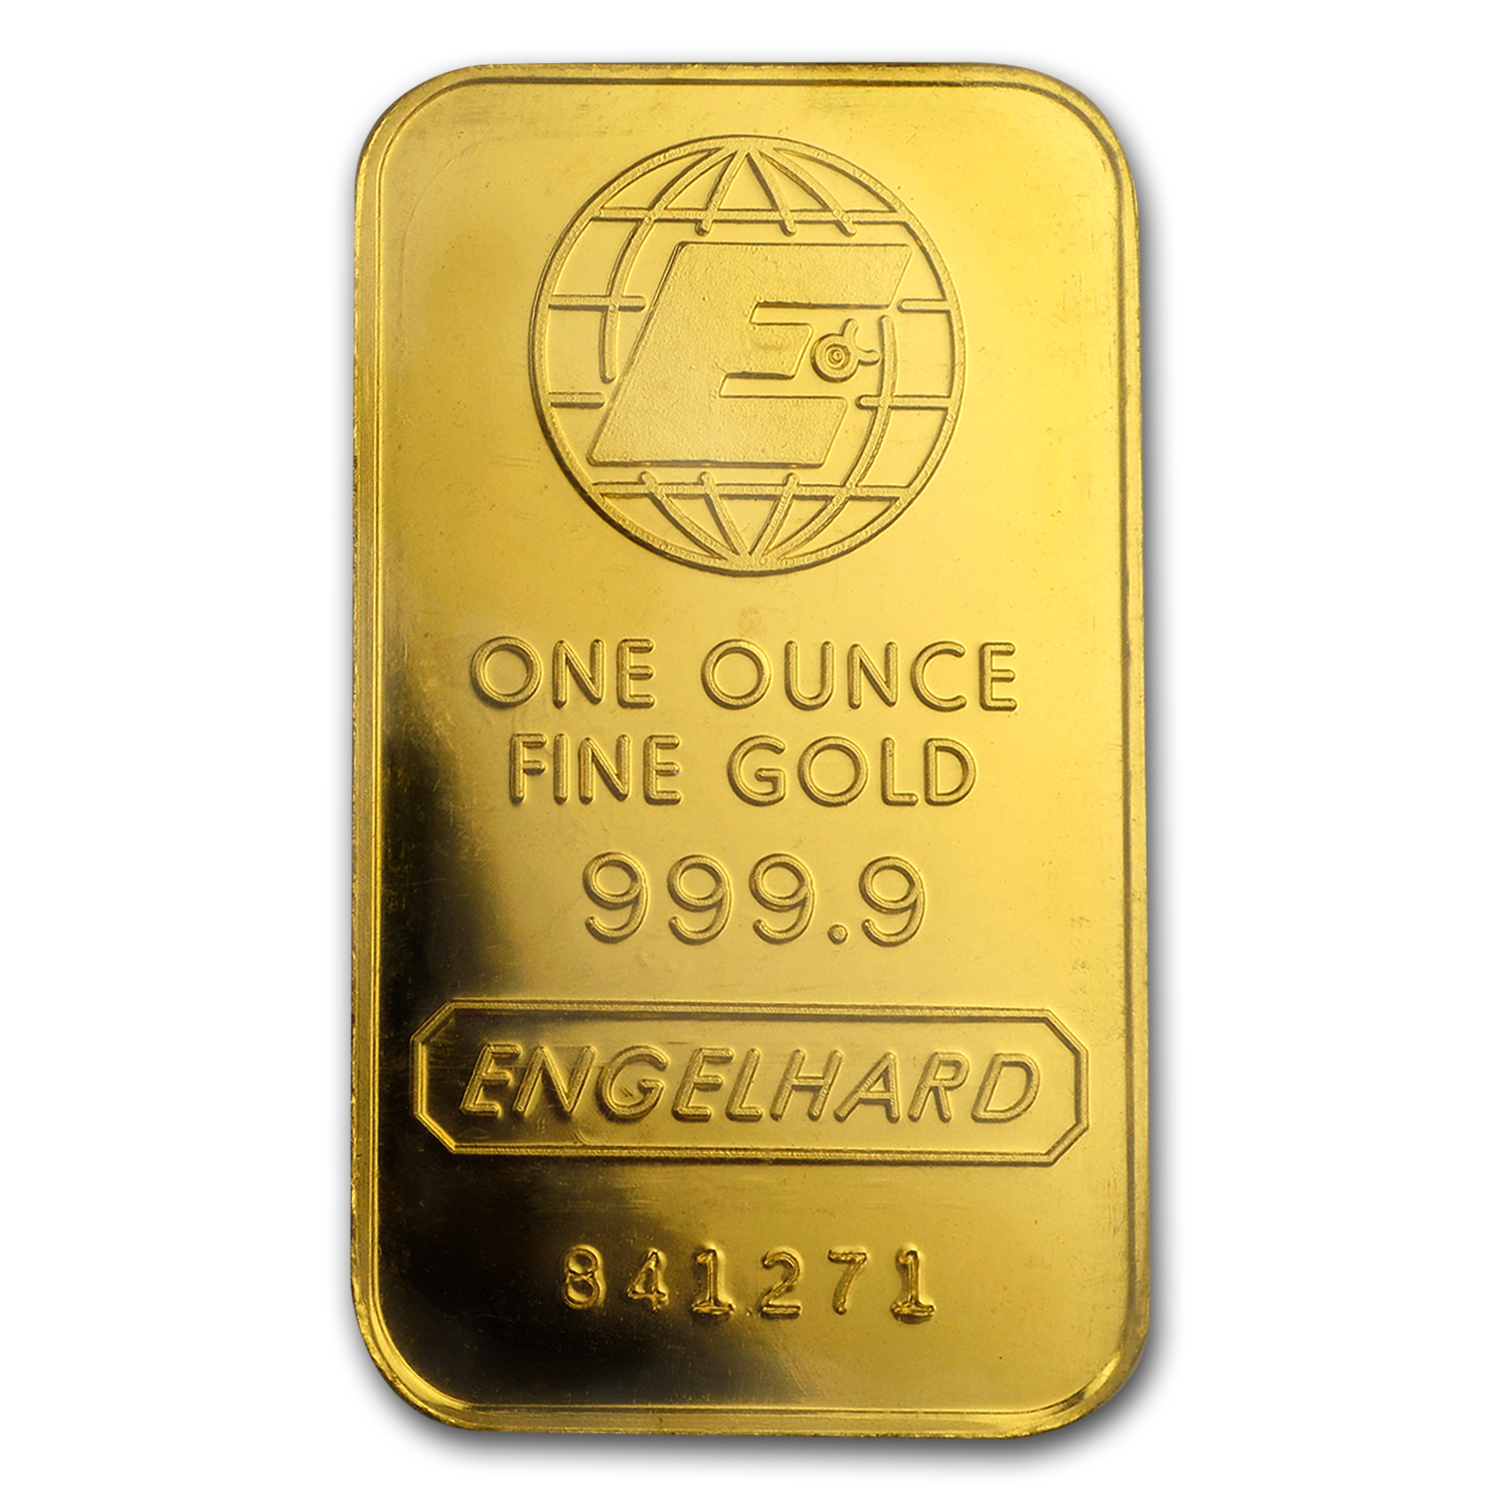 1 oz Gold Bar - Engelhard ('E' logo, In Assay Card)